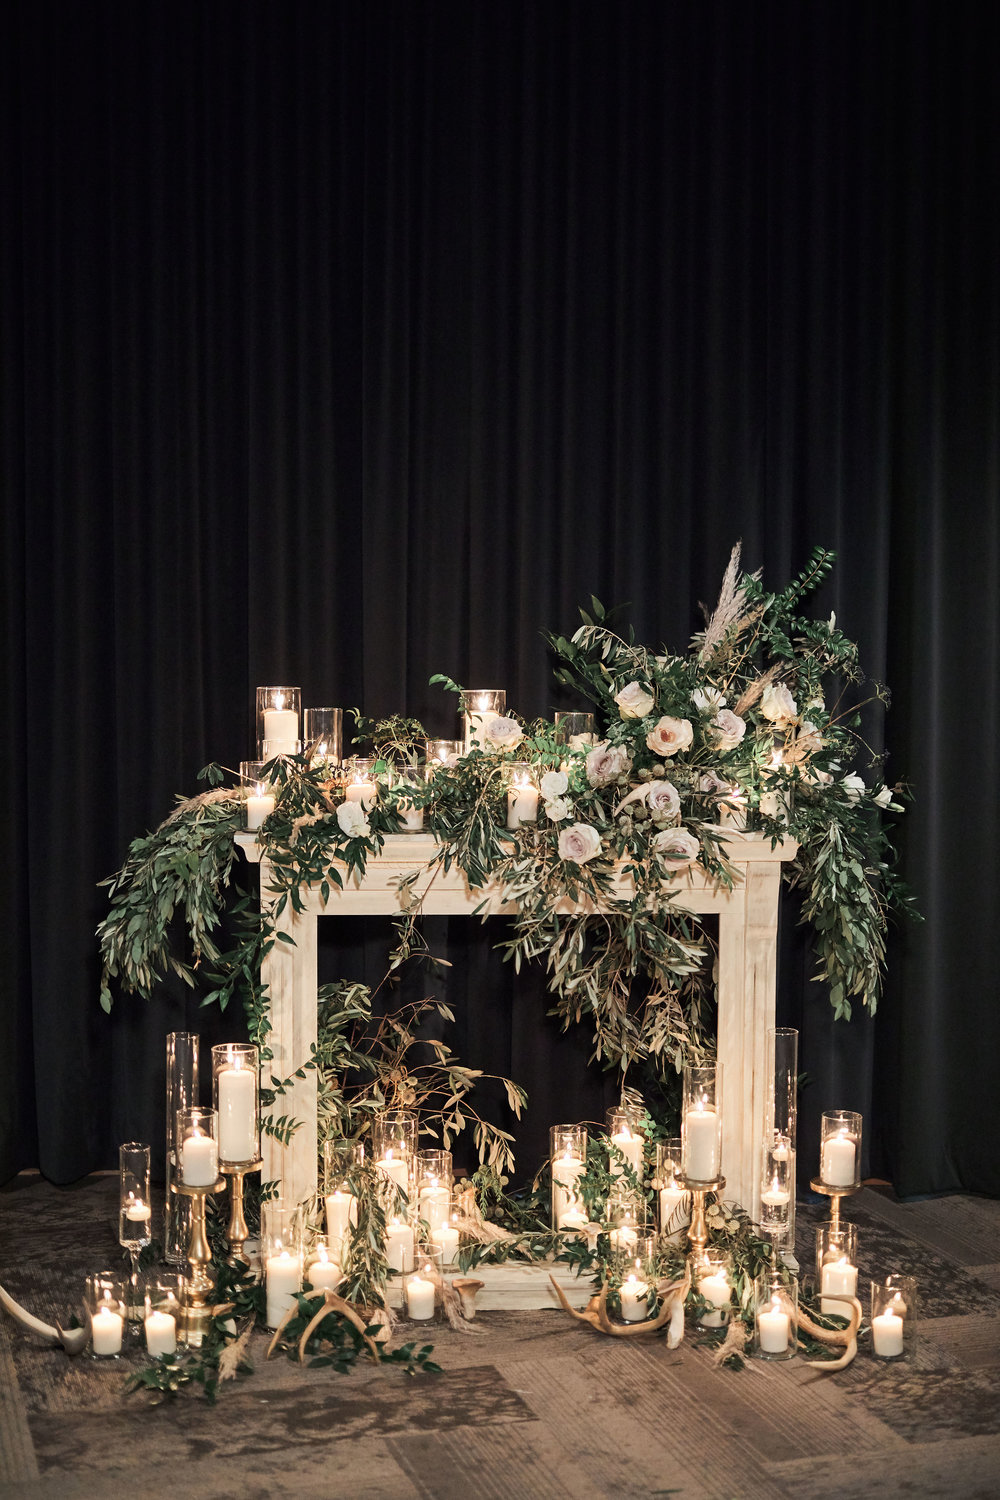 fireplace wedding backdrop installation